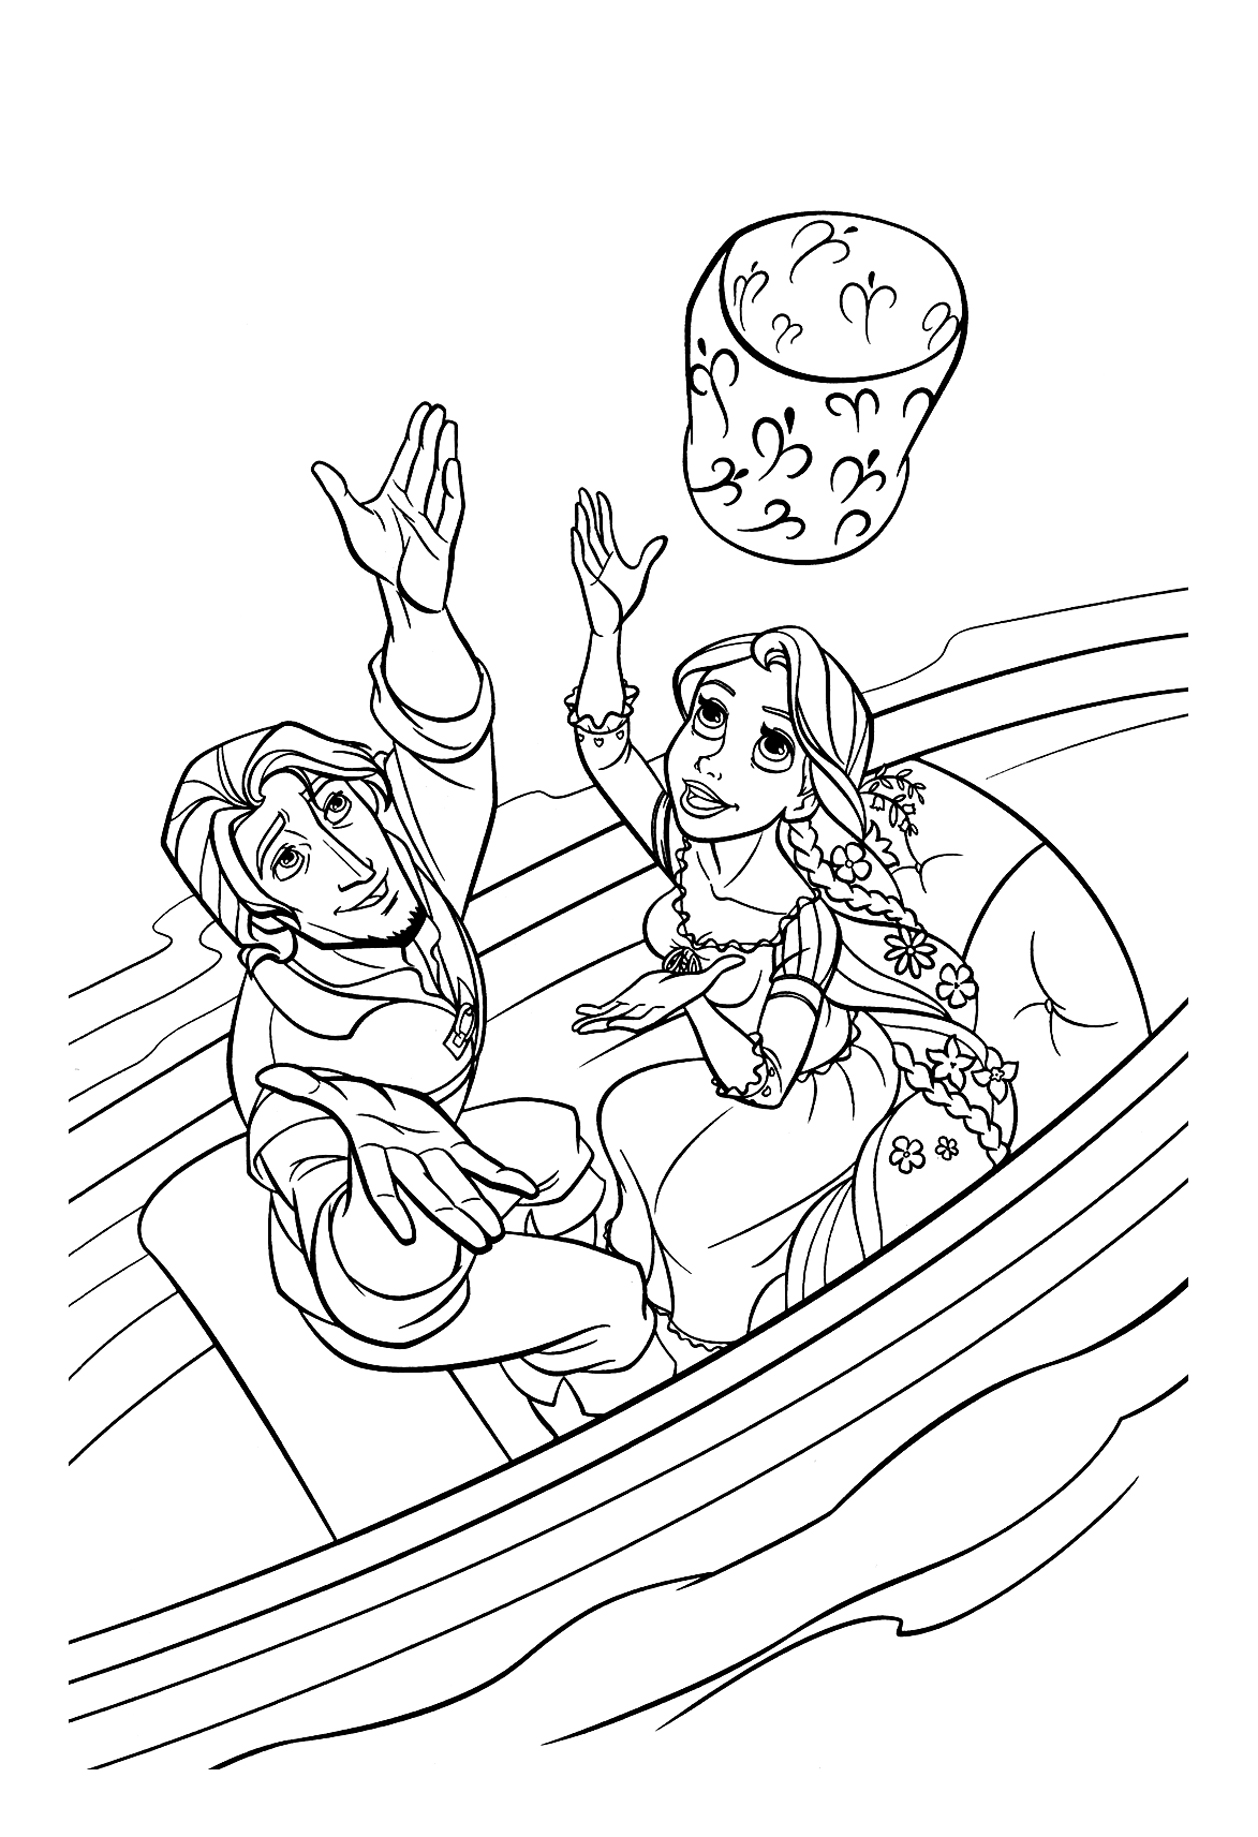 Tangled For Children Tangled Kids Coloring Pages